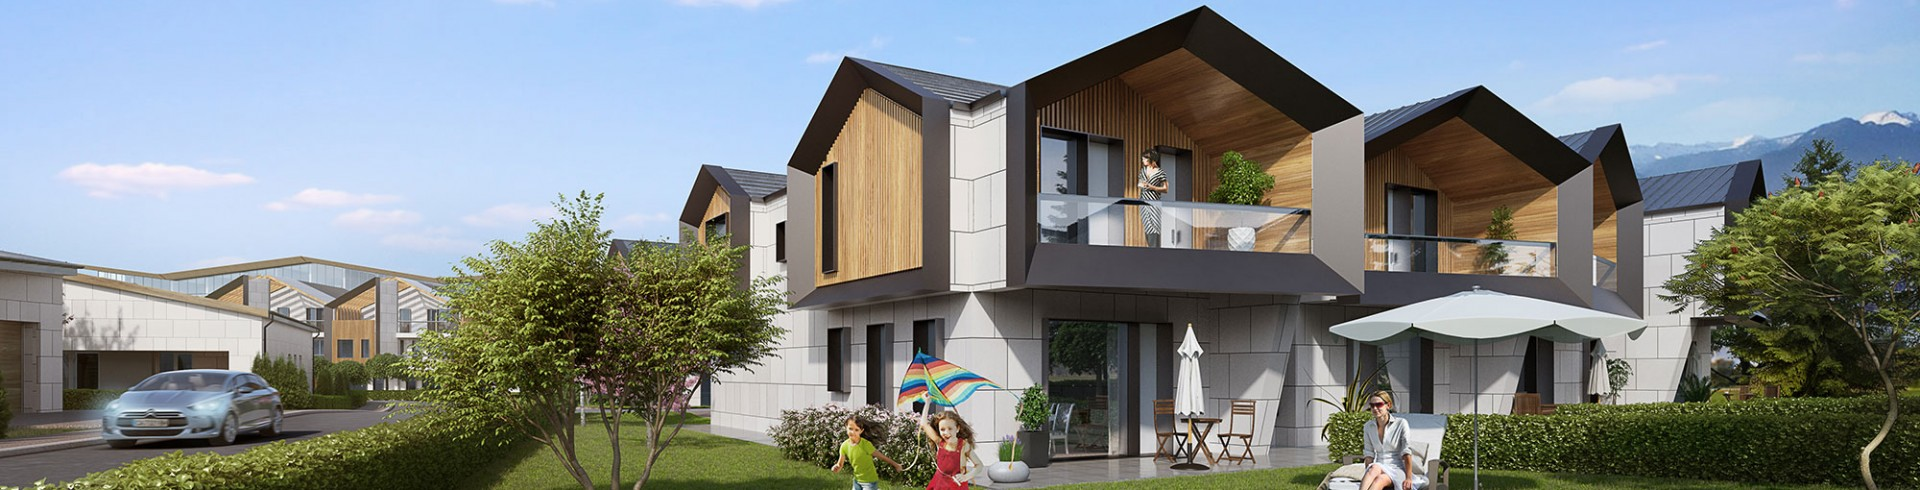 Single family two-storey row houses SRH